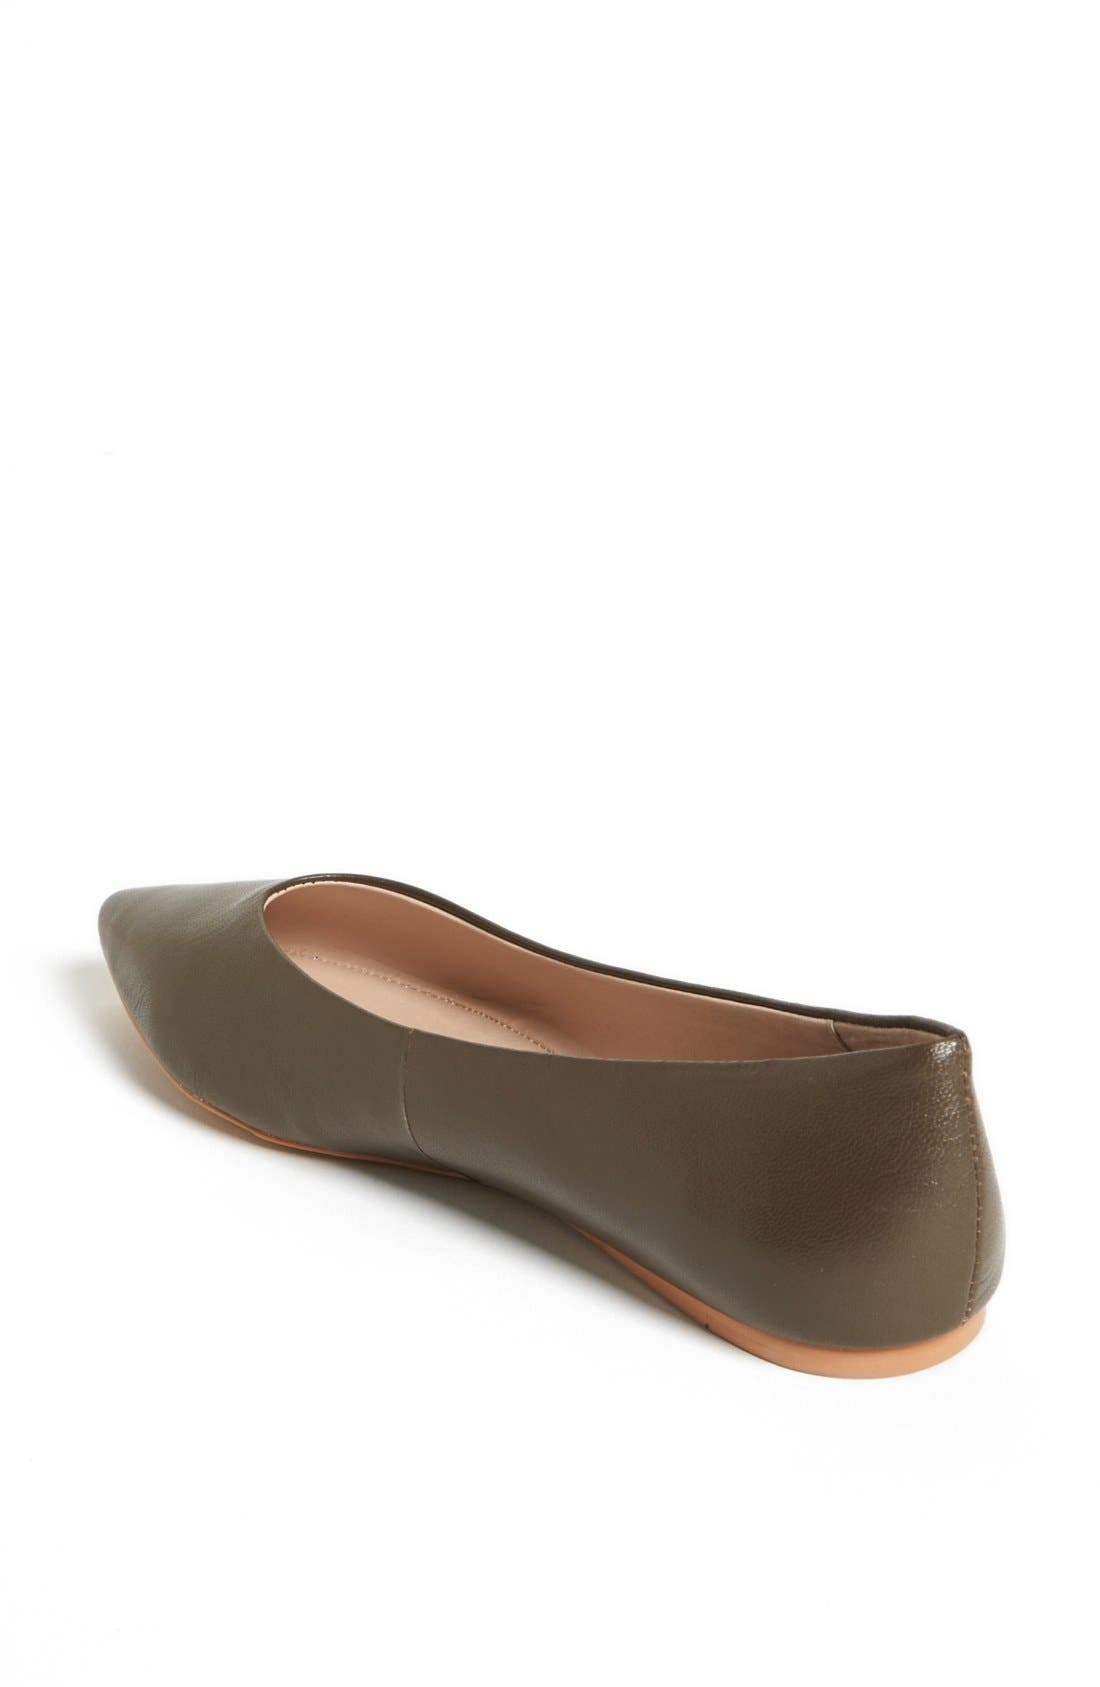 Alternate Image 2  - Steven by Steve Madden 'Elatedd' Pointed Toe Flat